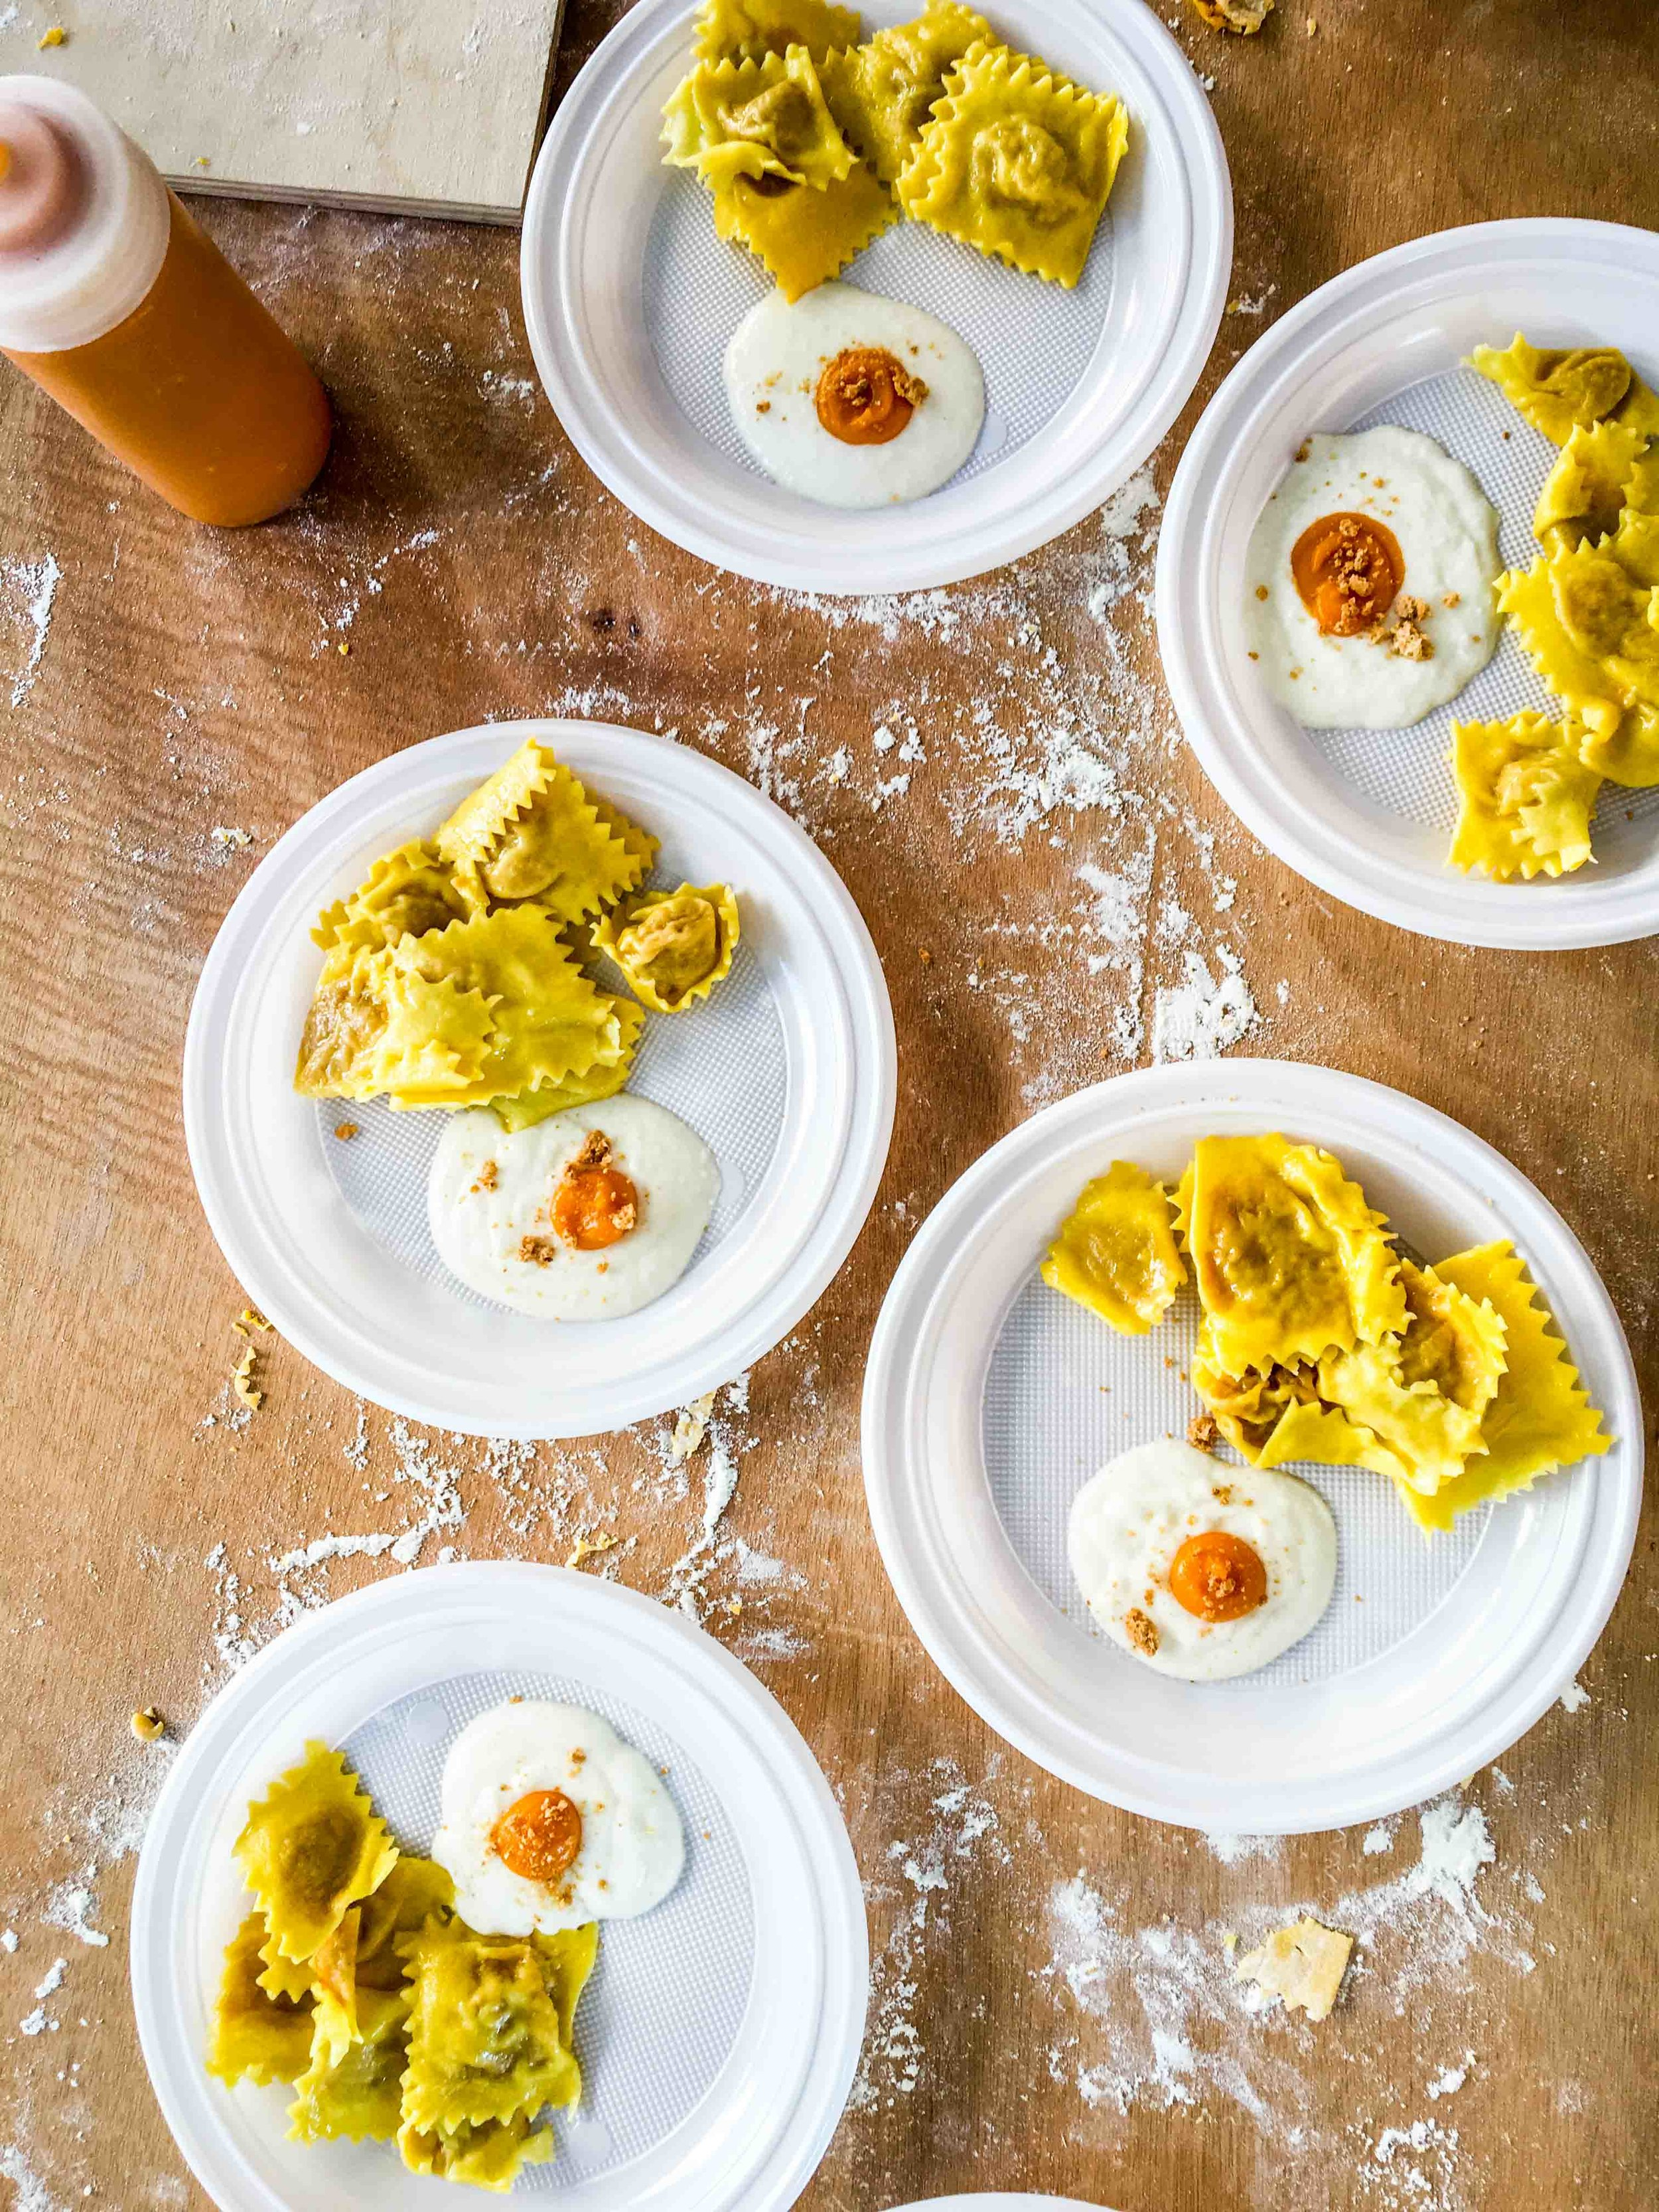 A traditional Reggio Emilia dish of tortelli stuffed with pumpkin puree and amaretti crumbs and sauteed in butter, also reinterpreted as parmesan cream and pumpkin puree fried egg!